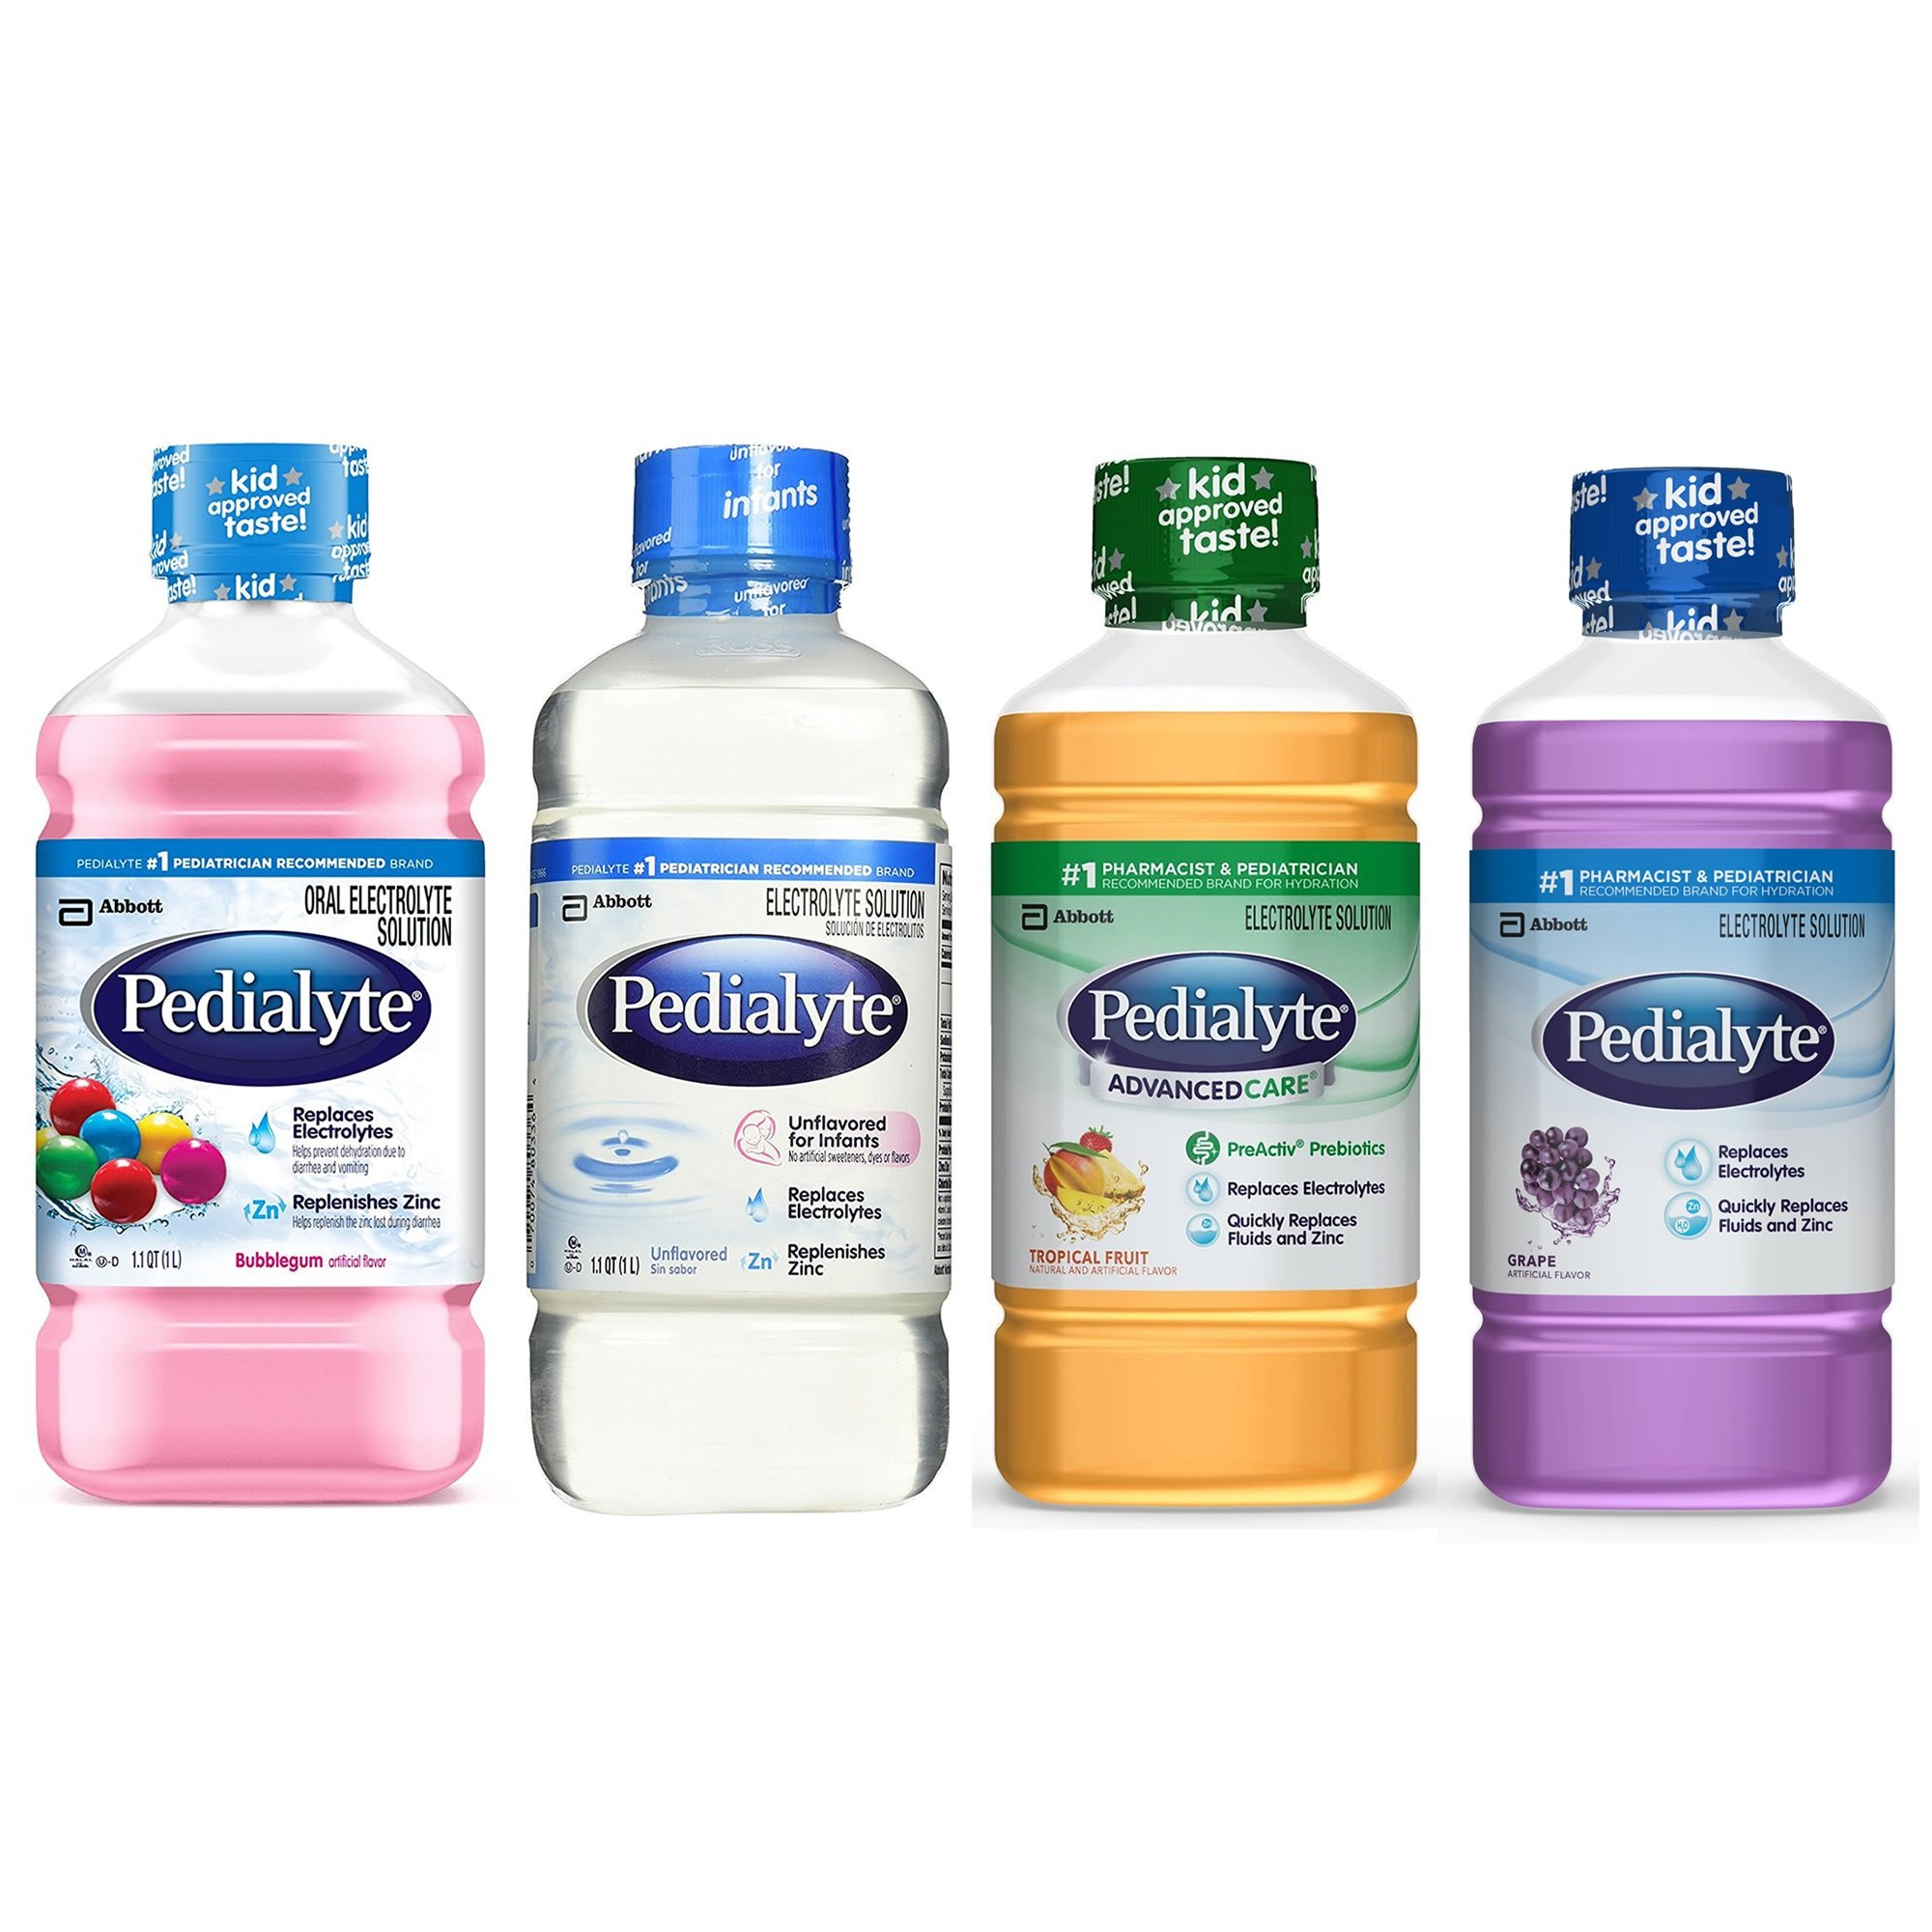 Pedialyte® Ready-to-Feed 1L Bottle, Low Osmolality, Oral Electrolyte Maintenance Solution -4 Flavors